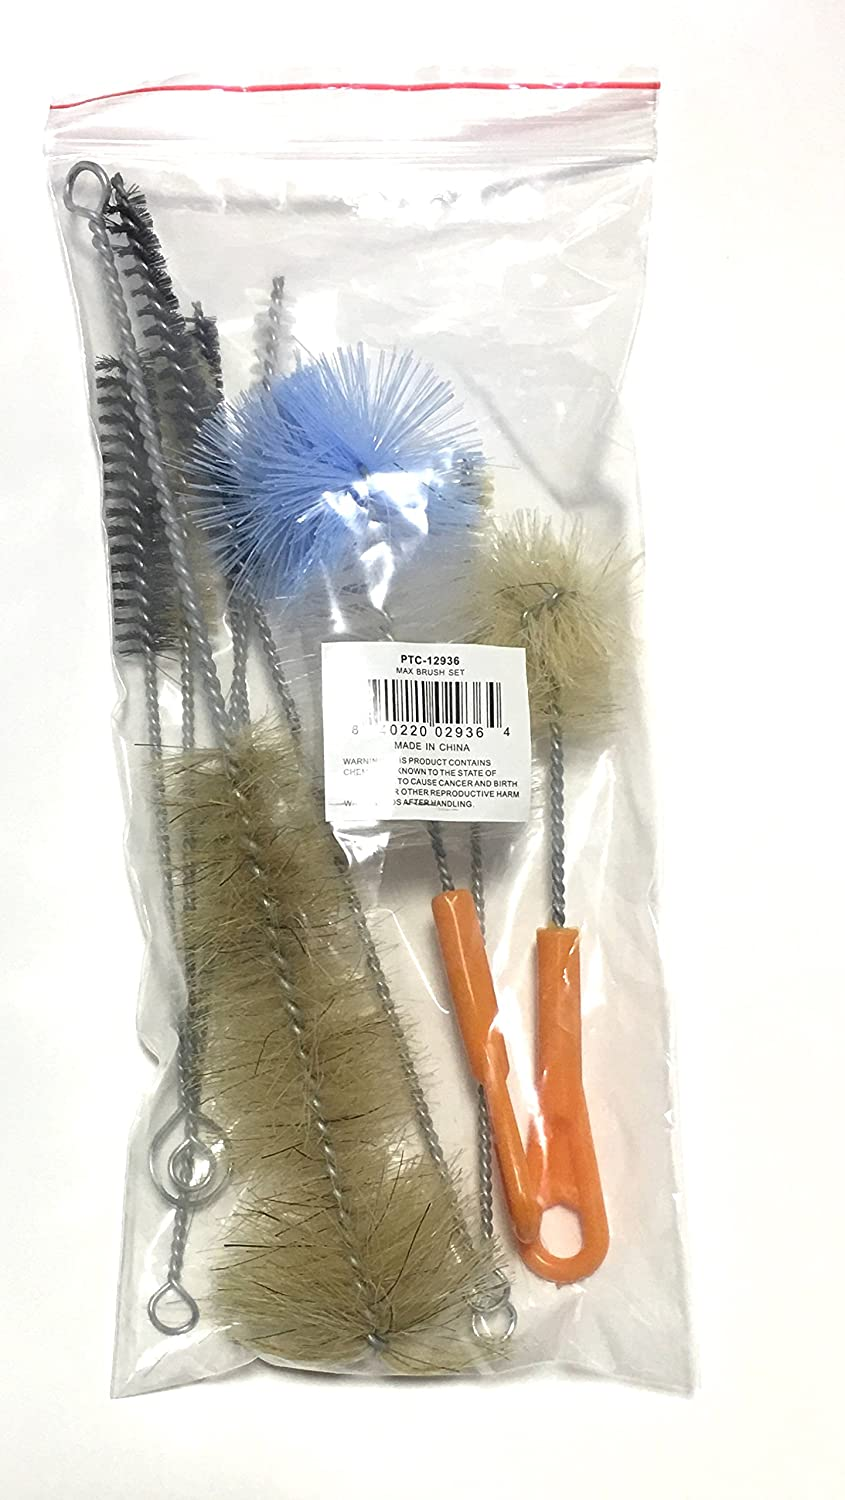 Ultimate Bottle & Tube Brush Cleaning Set 9 Sizes & Shapes - Natural & Synthetic Bristles By ProTool Prosperity Tool 12936